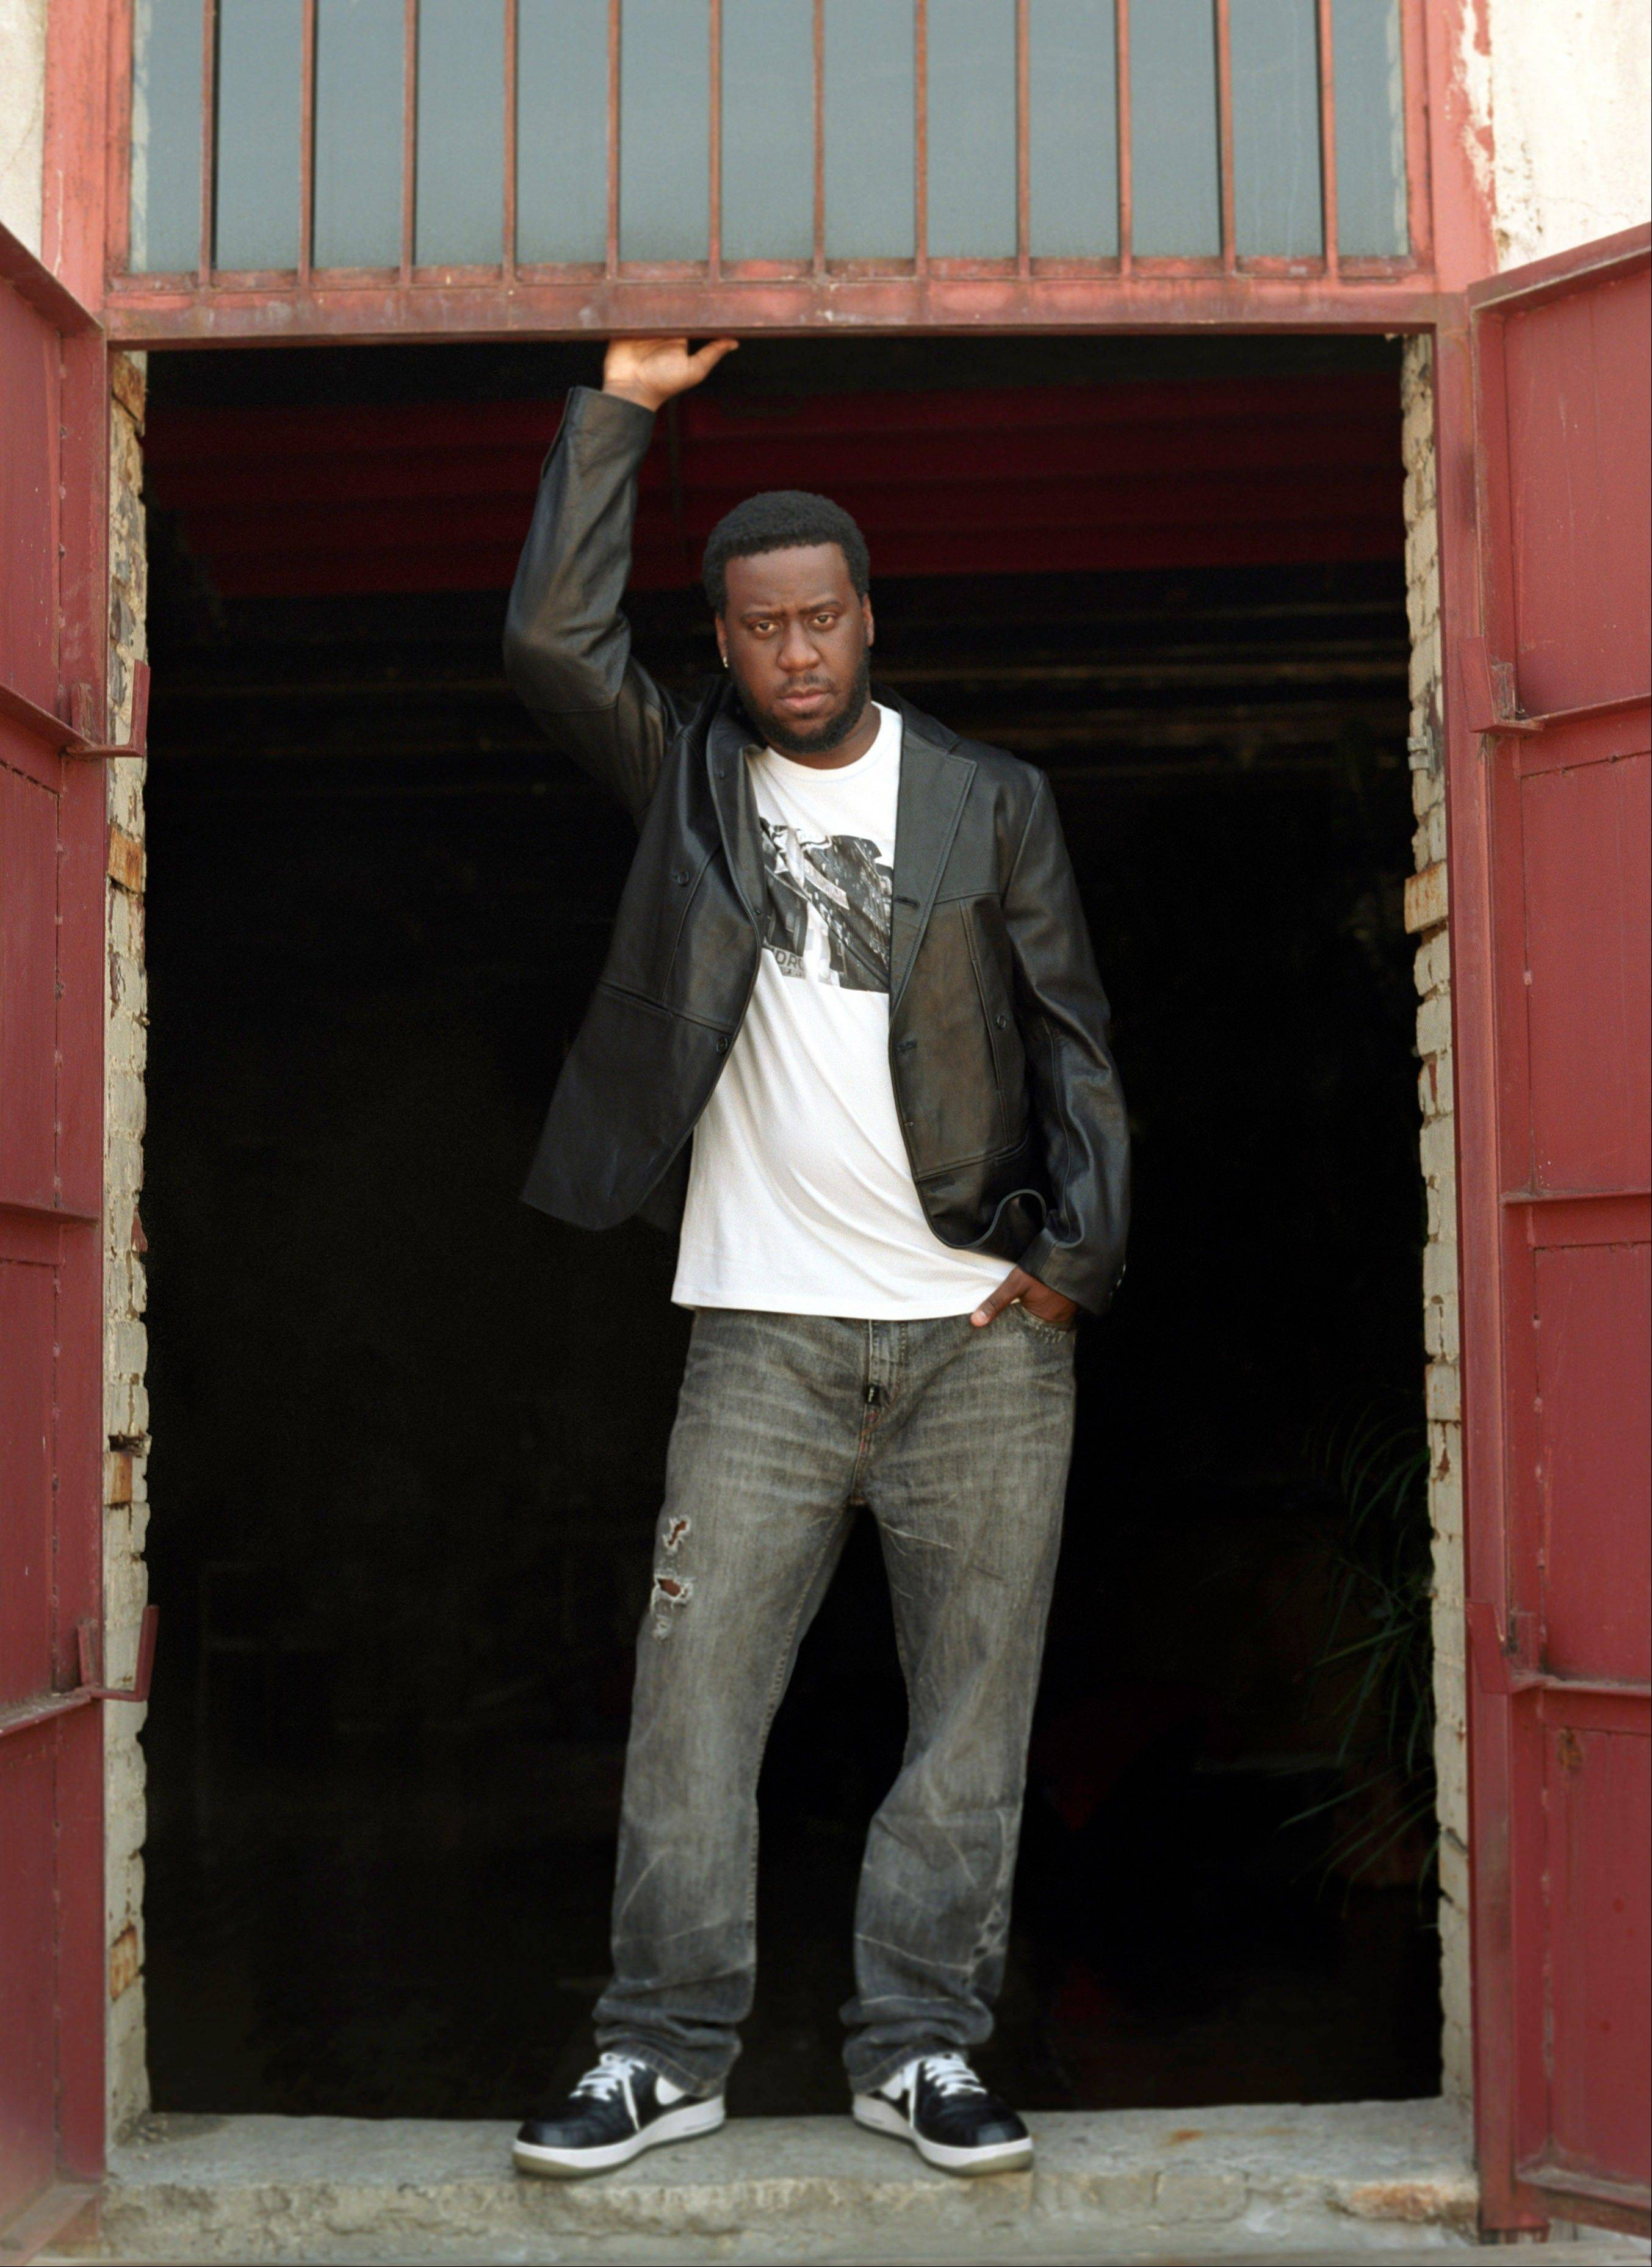 Jazz musician Robert Glasper is set to perform at the Chicago Jazz Festival on Sunday, Sept. 1.